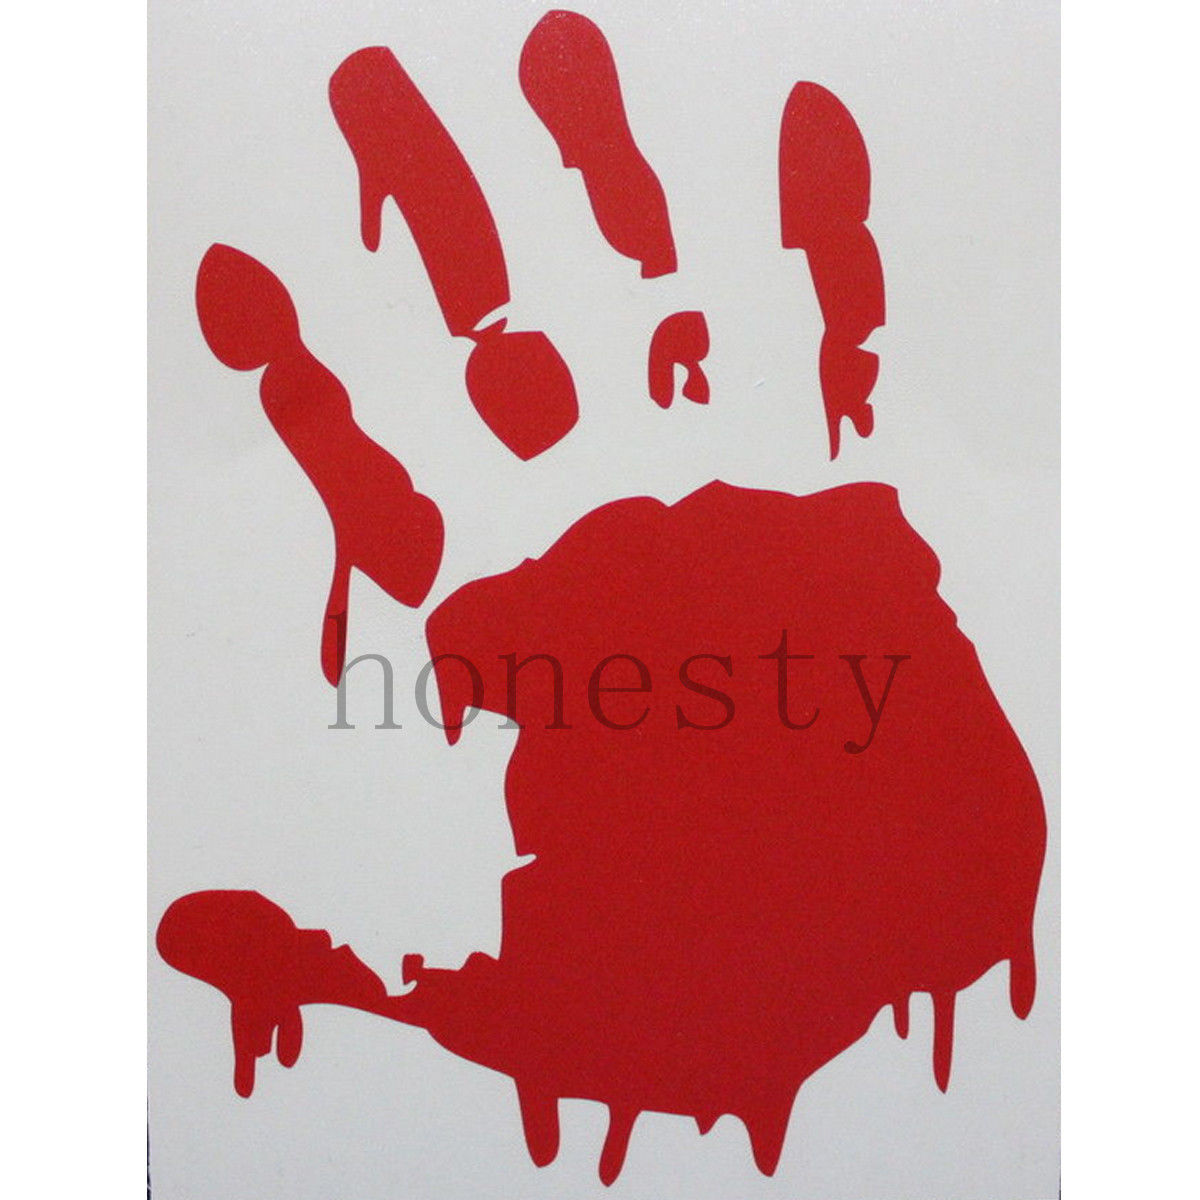 1pcs x bloody zombie red hand print car truck vehicle window winscreen wall bumper decal vinyl - Bloody Halloween Decorations